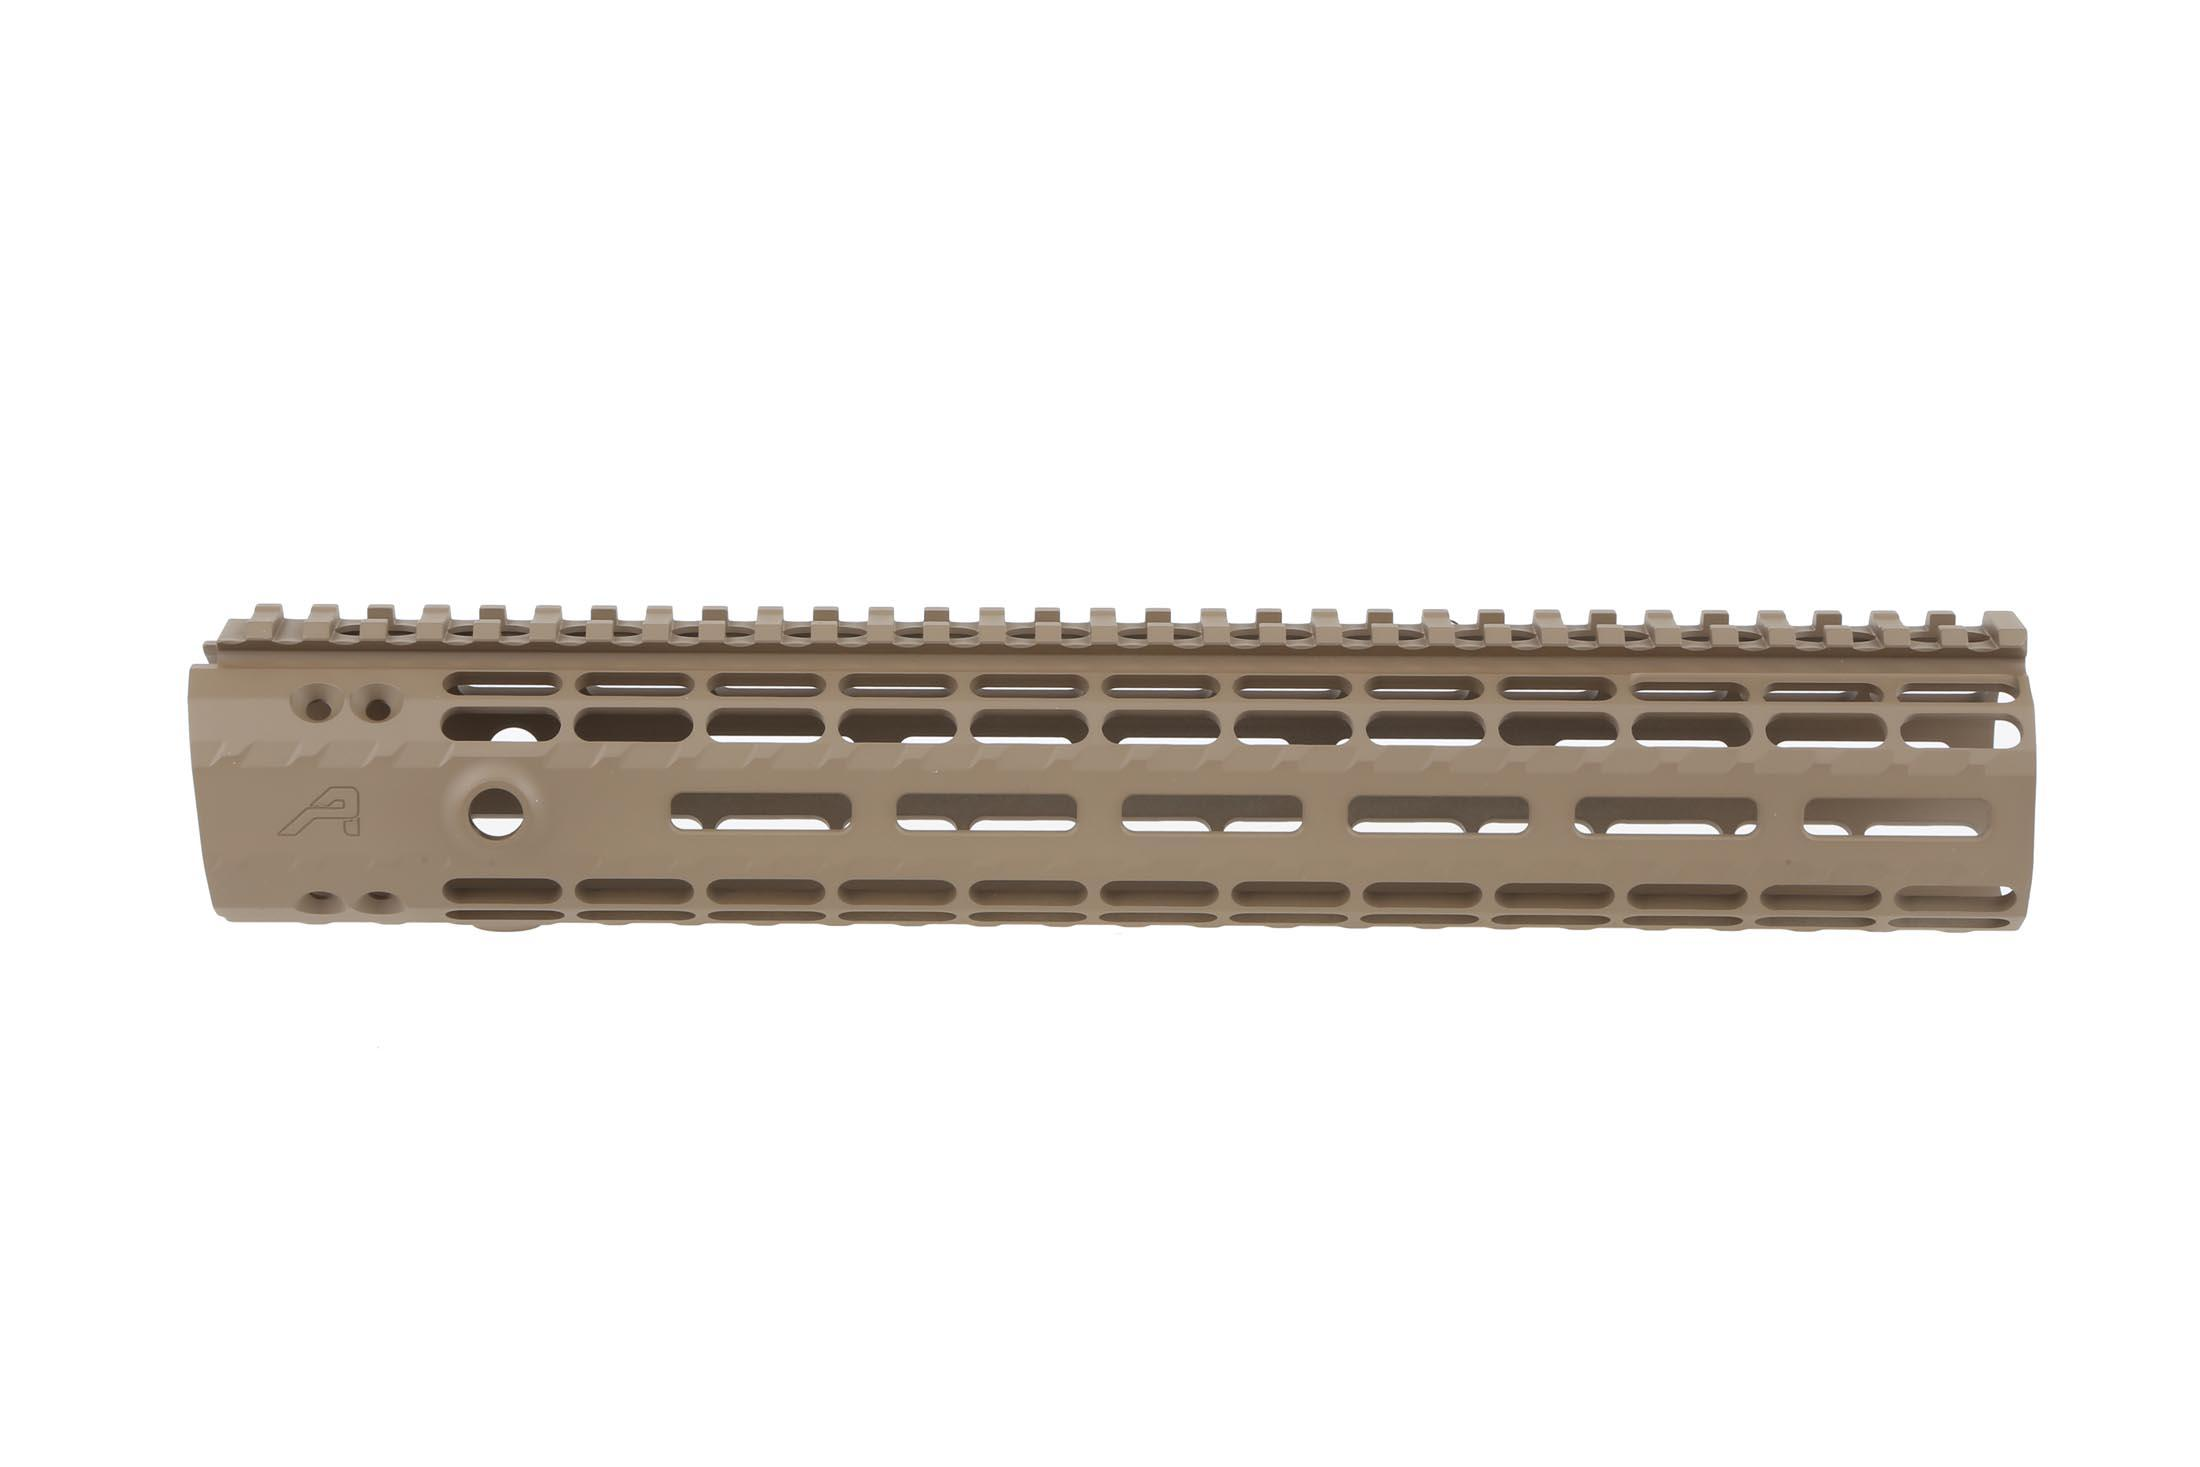 The Aero Precision 12in AR-15 Enhanced M-LOK Handguard comes in fde cerakote